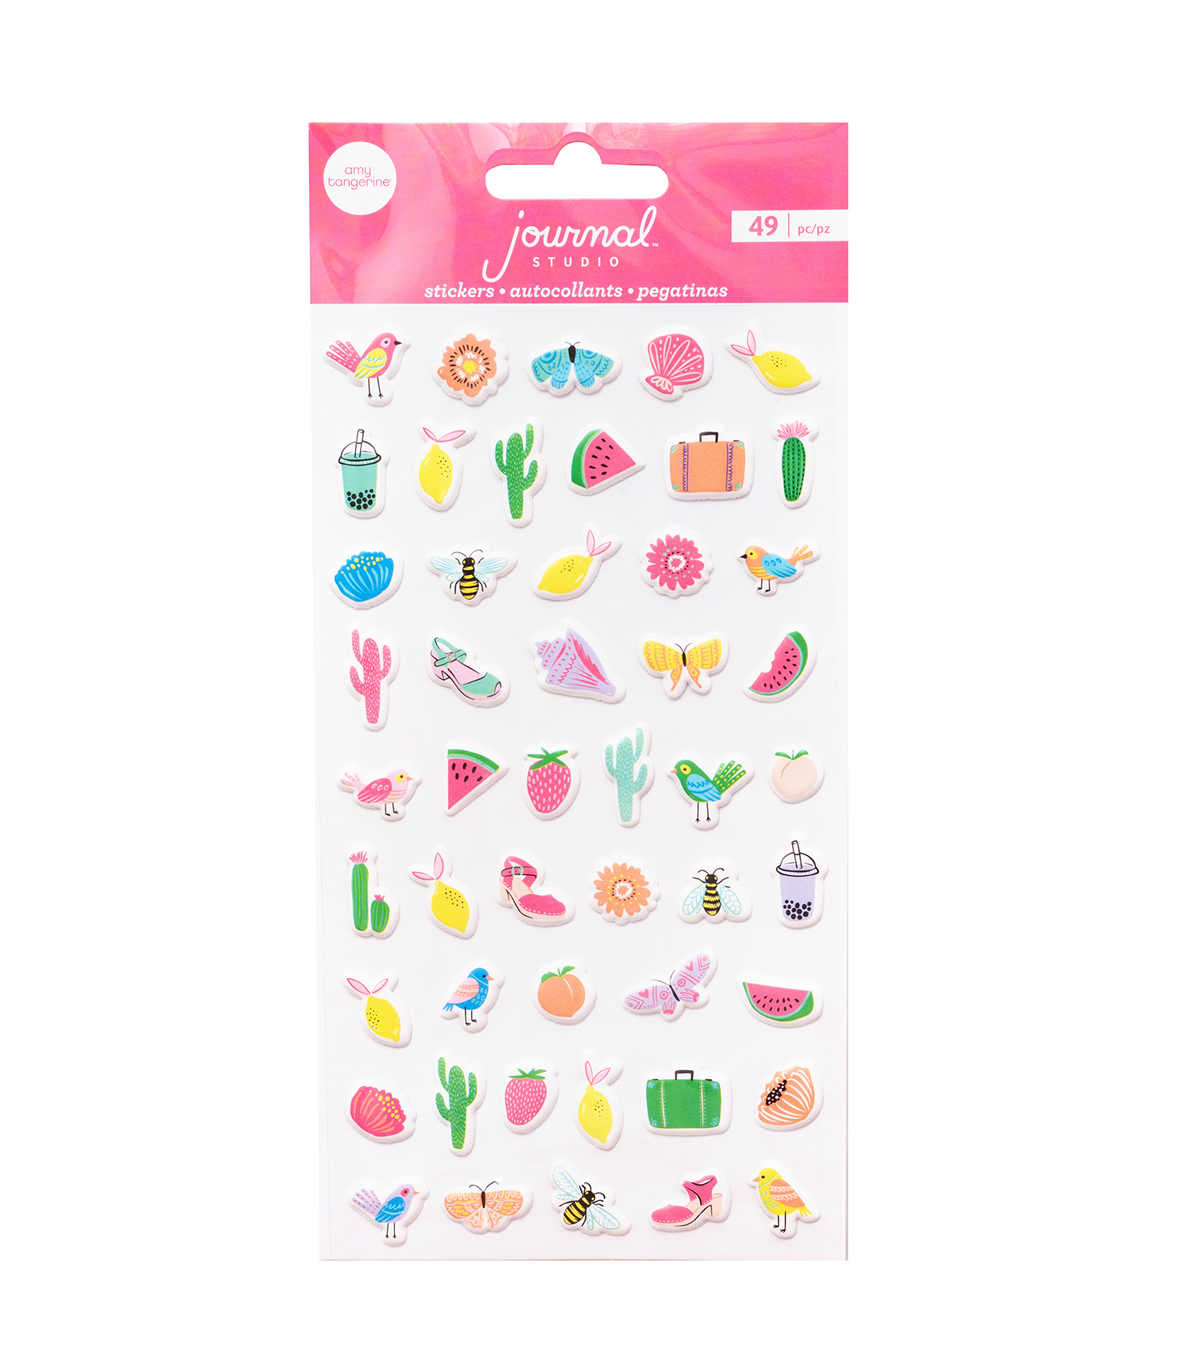 American Crafts Journal Studio 49 pk Mini Puffy Stickers-Adventure